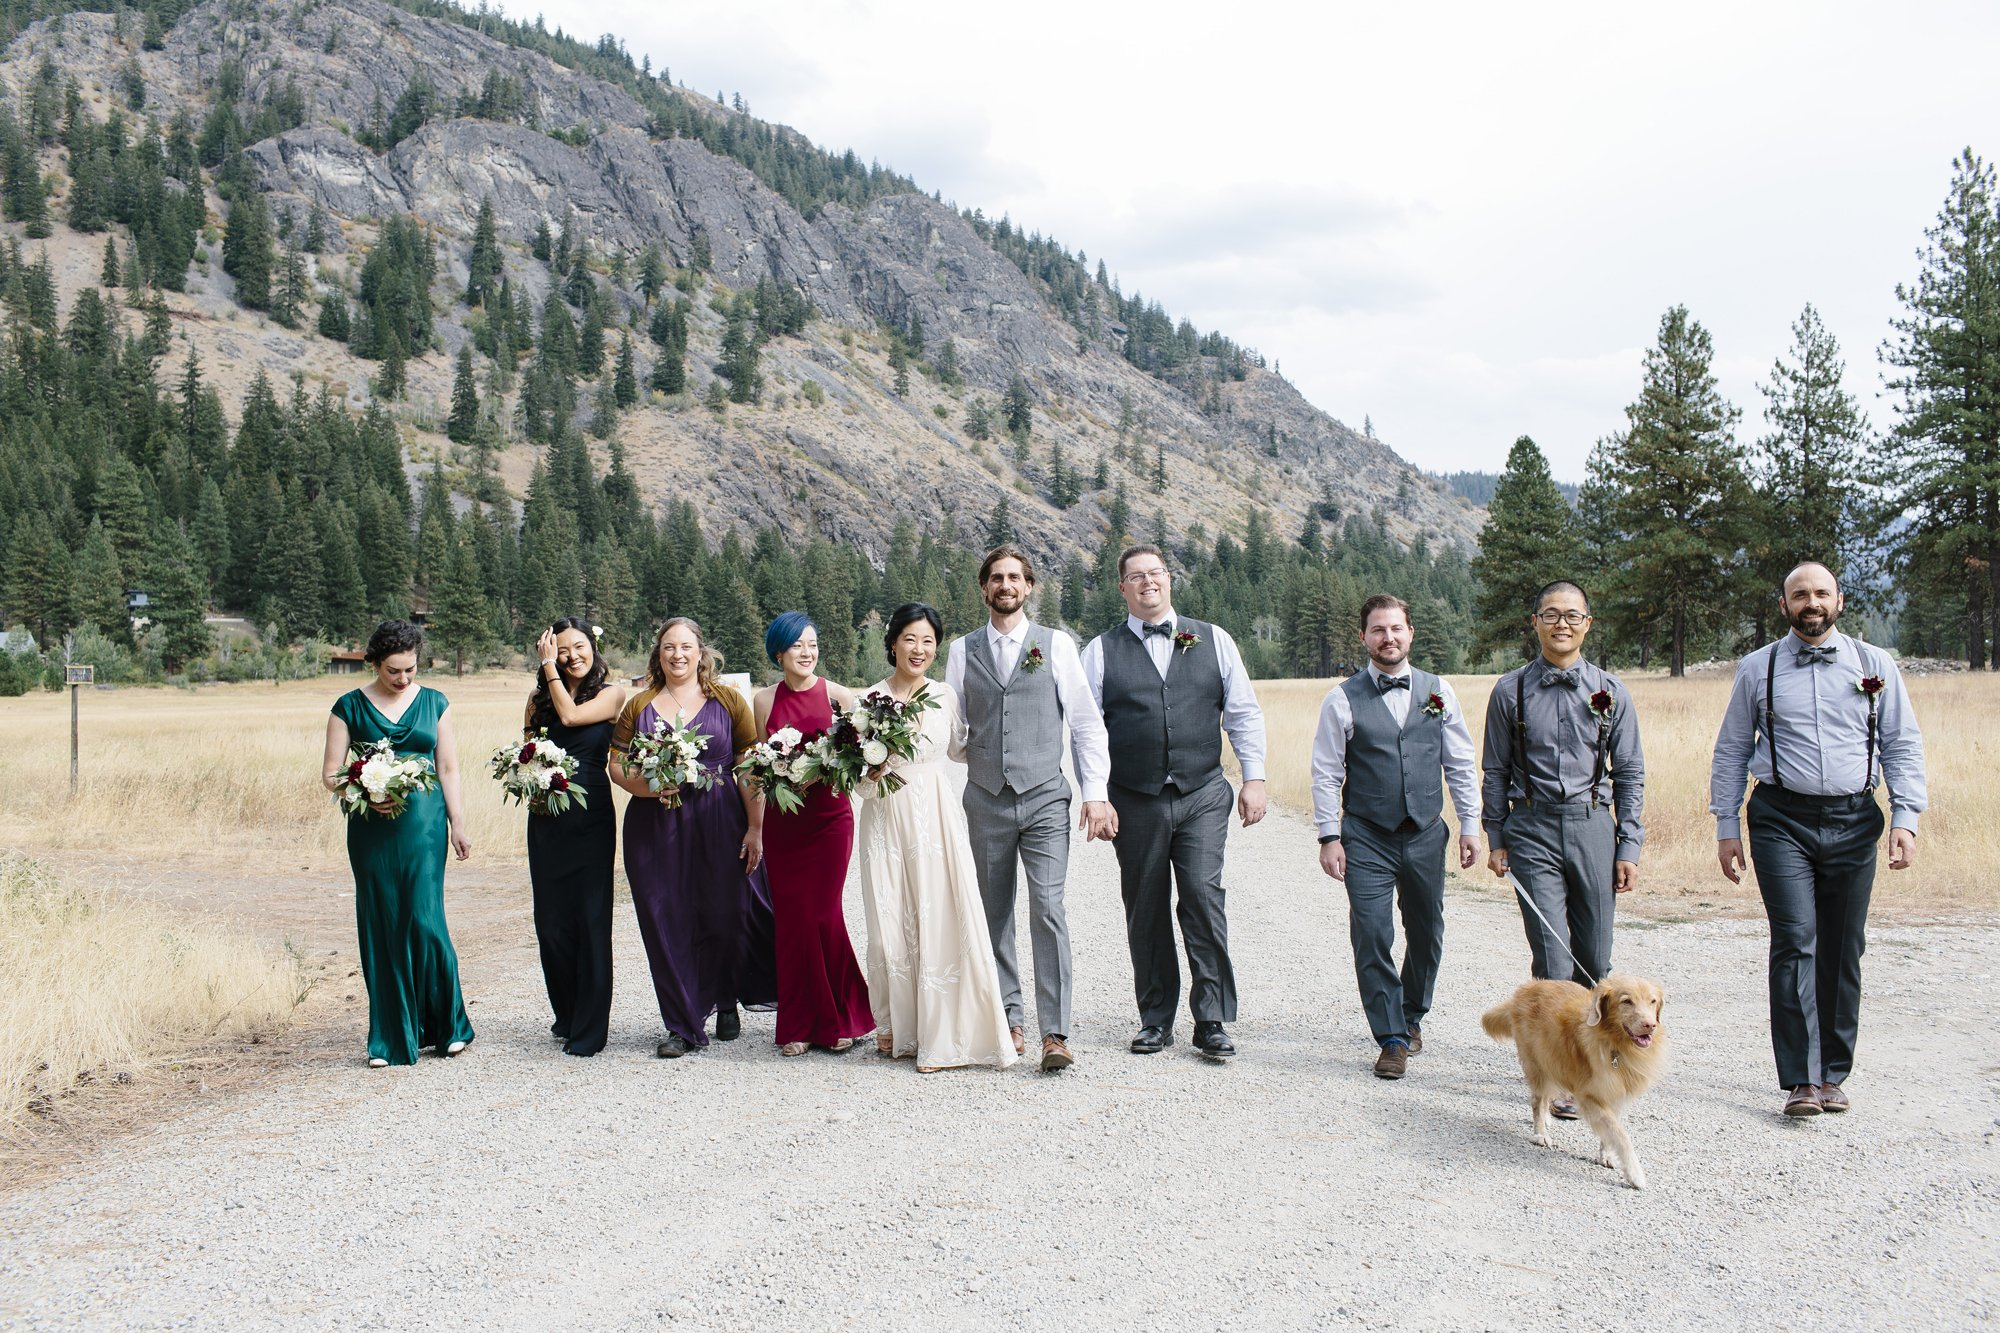 Wedding Party in Jewel Toned Dresses and Grey Suits